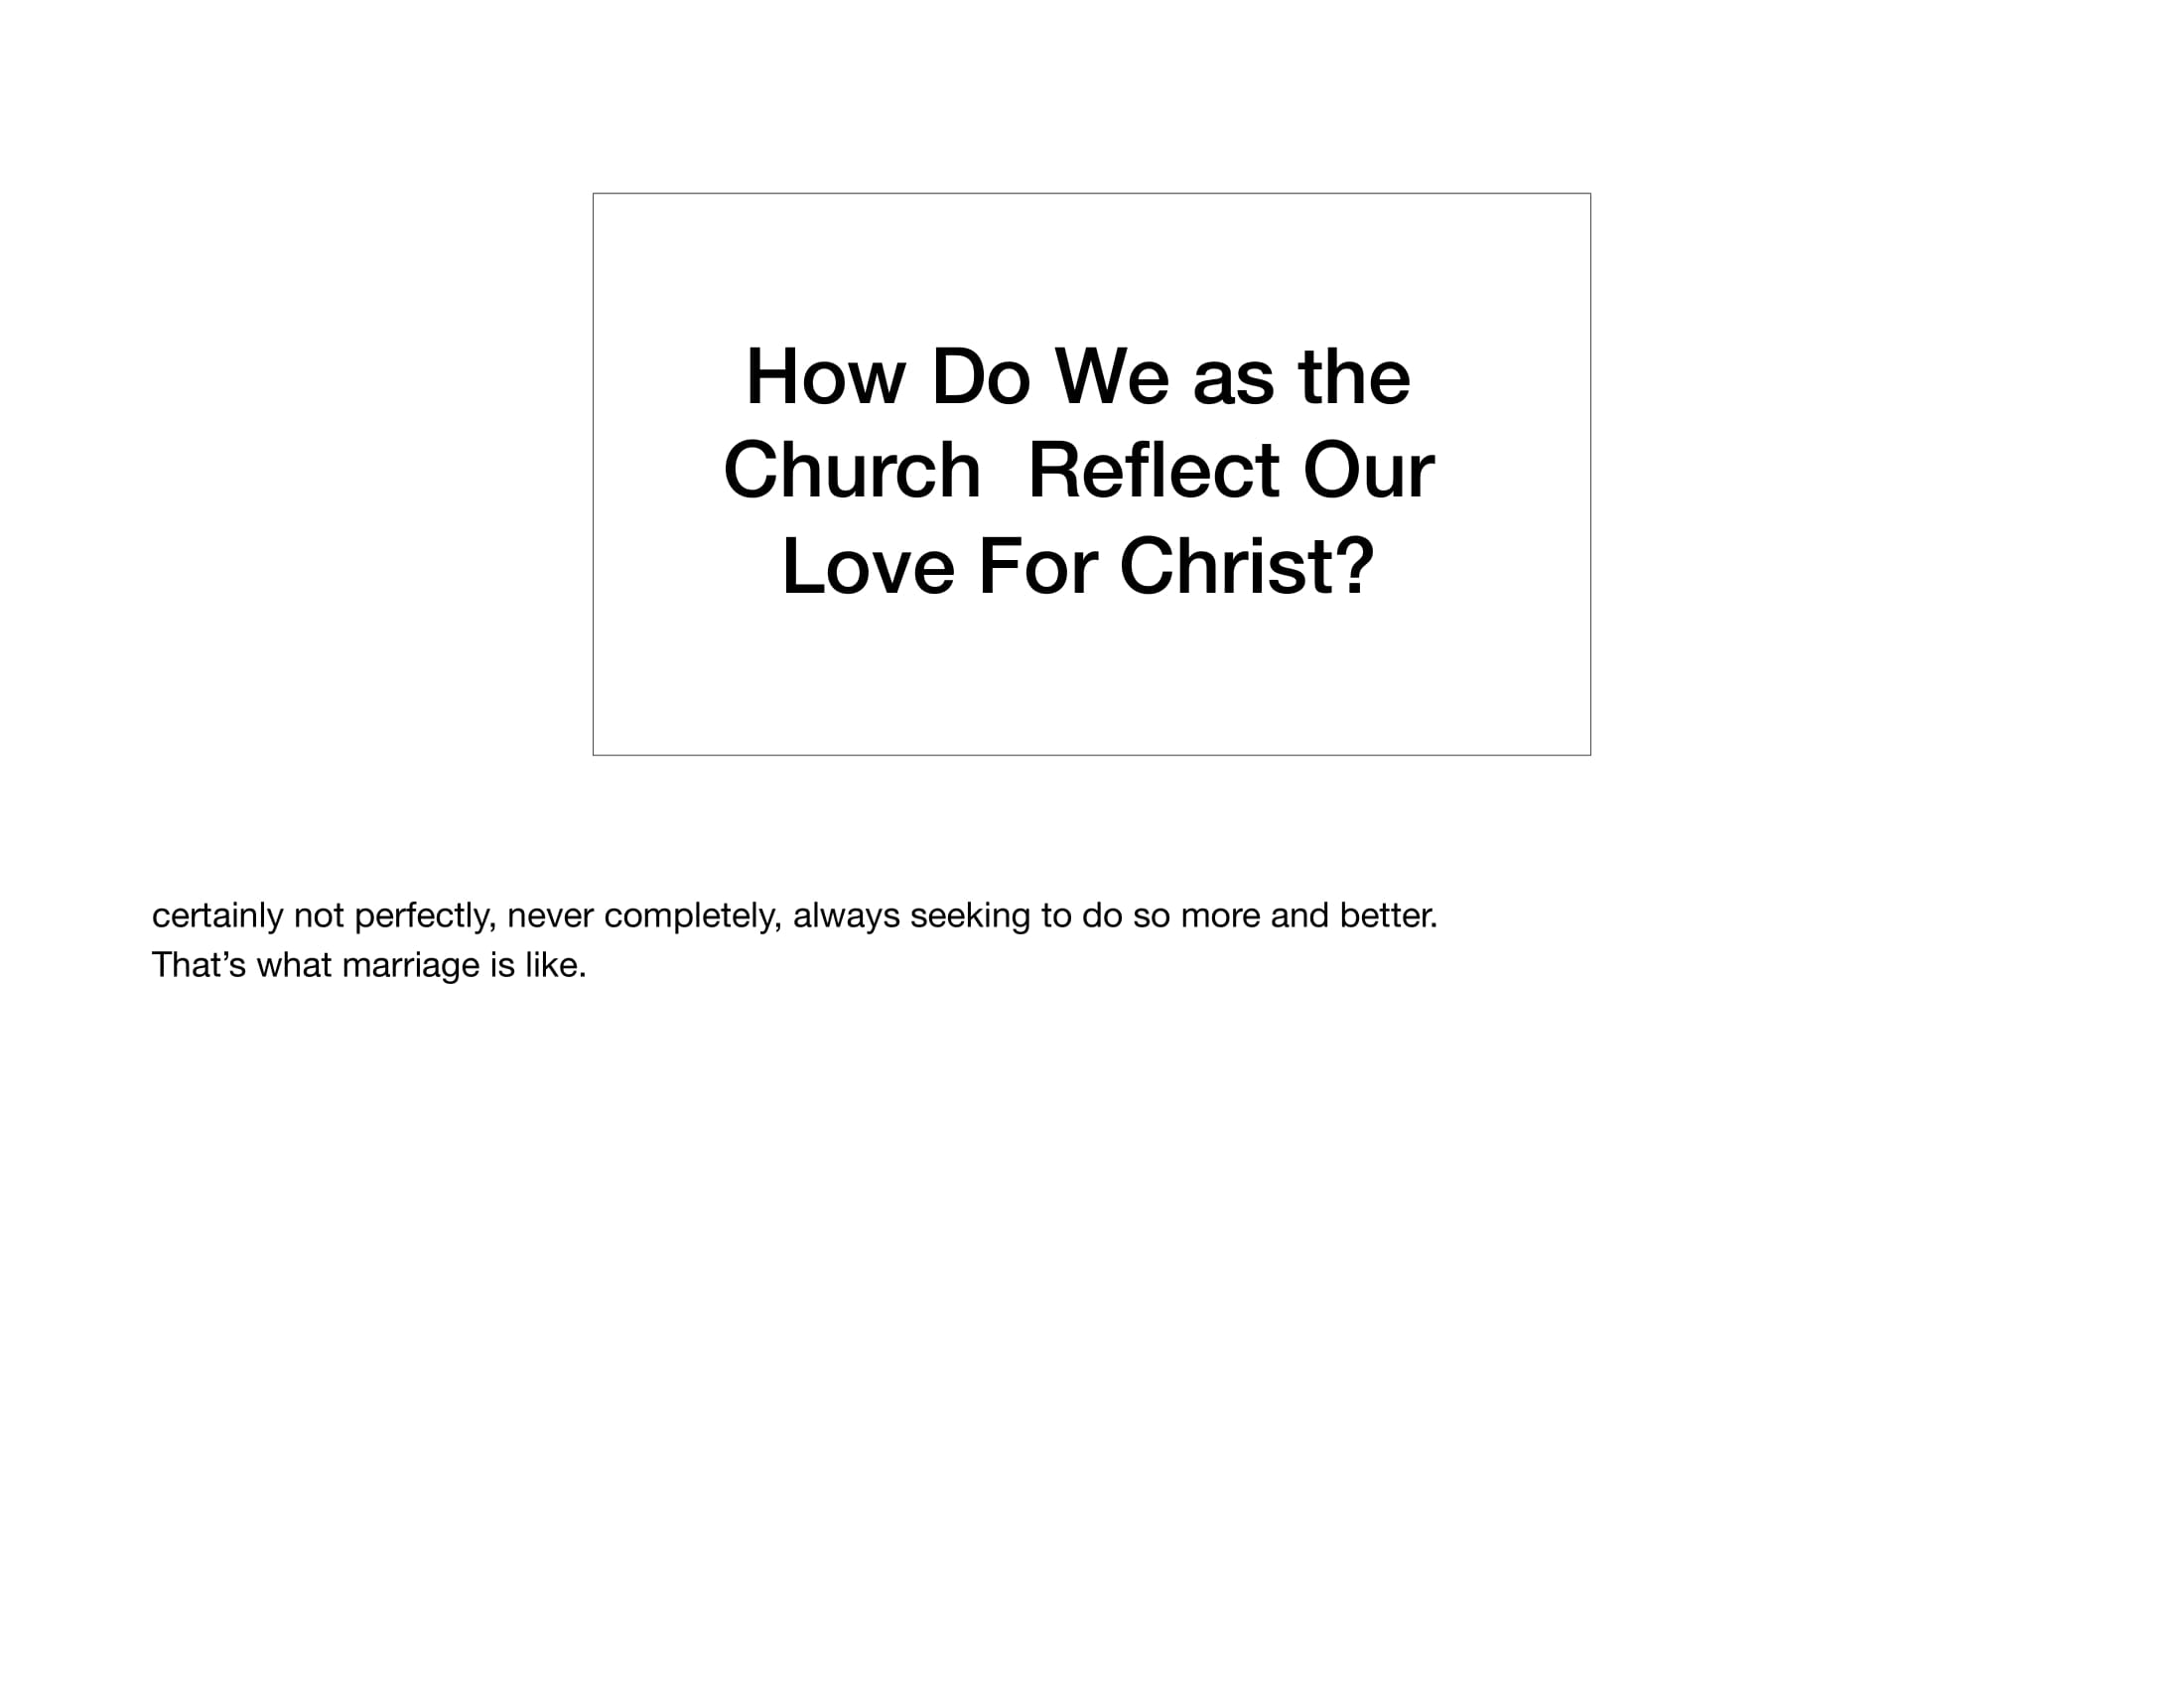 LGI-05 - God Desires Wives Who Reflect Christ's Love To Their Husbands-16